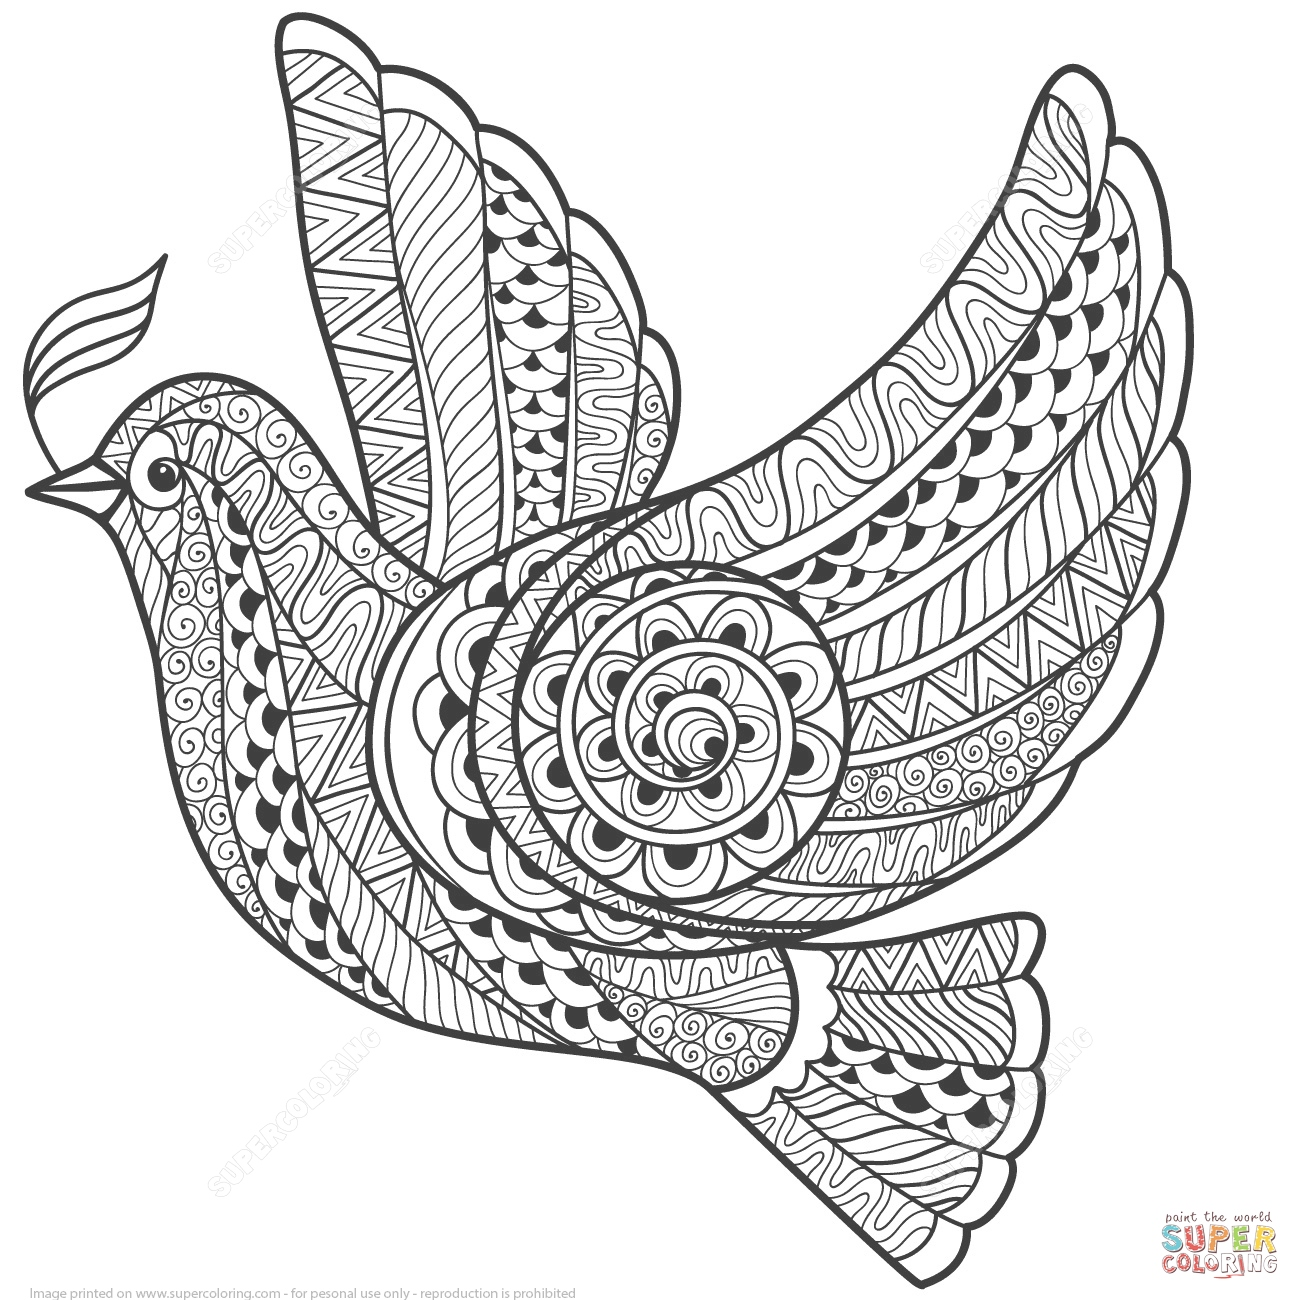 1300x1300 Zentangle Coloring Pages Fresh Zentangle Animal Coloring Pages Sea